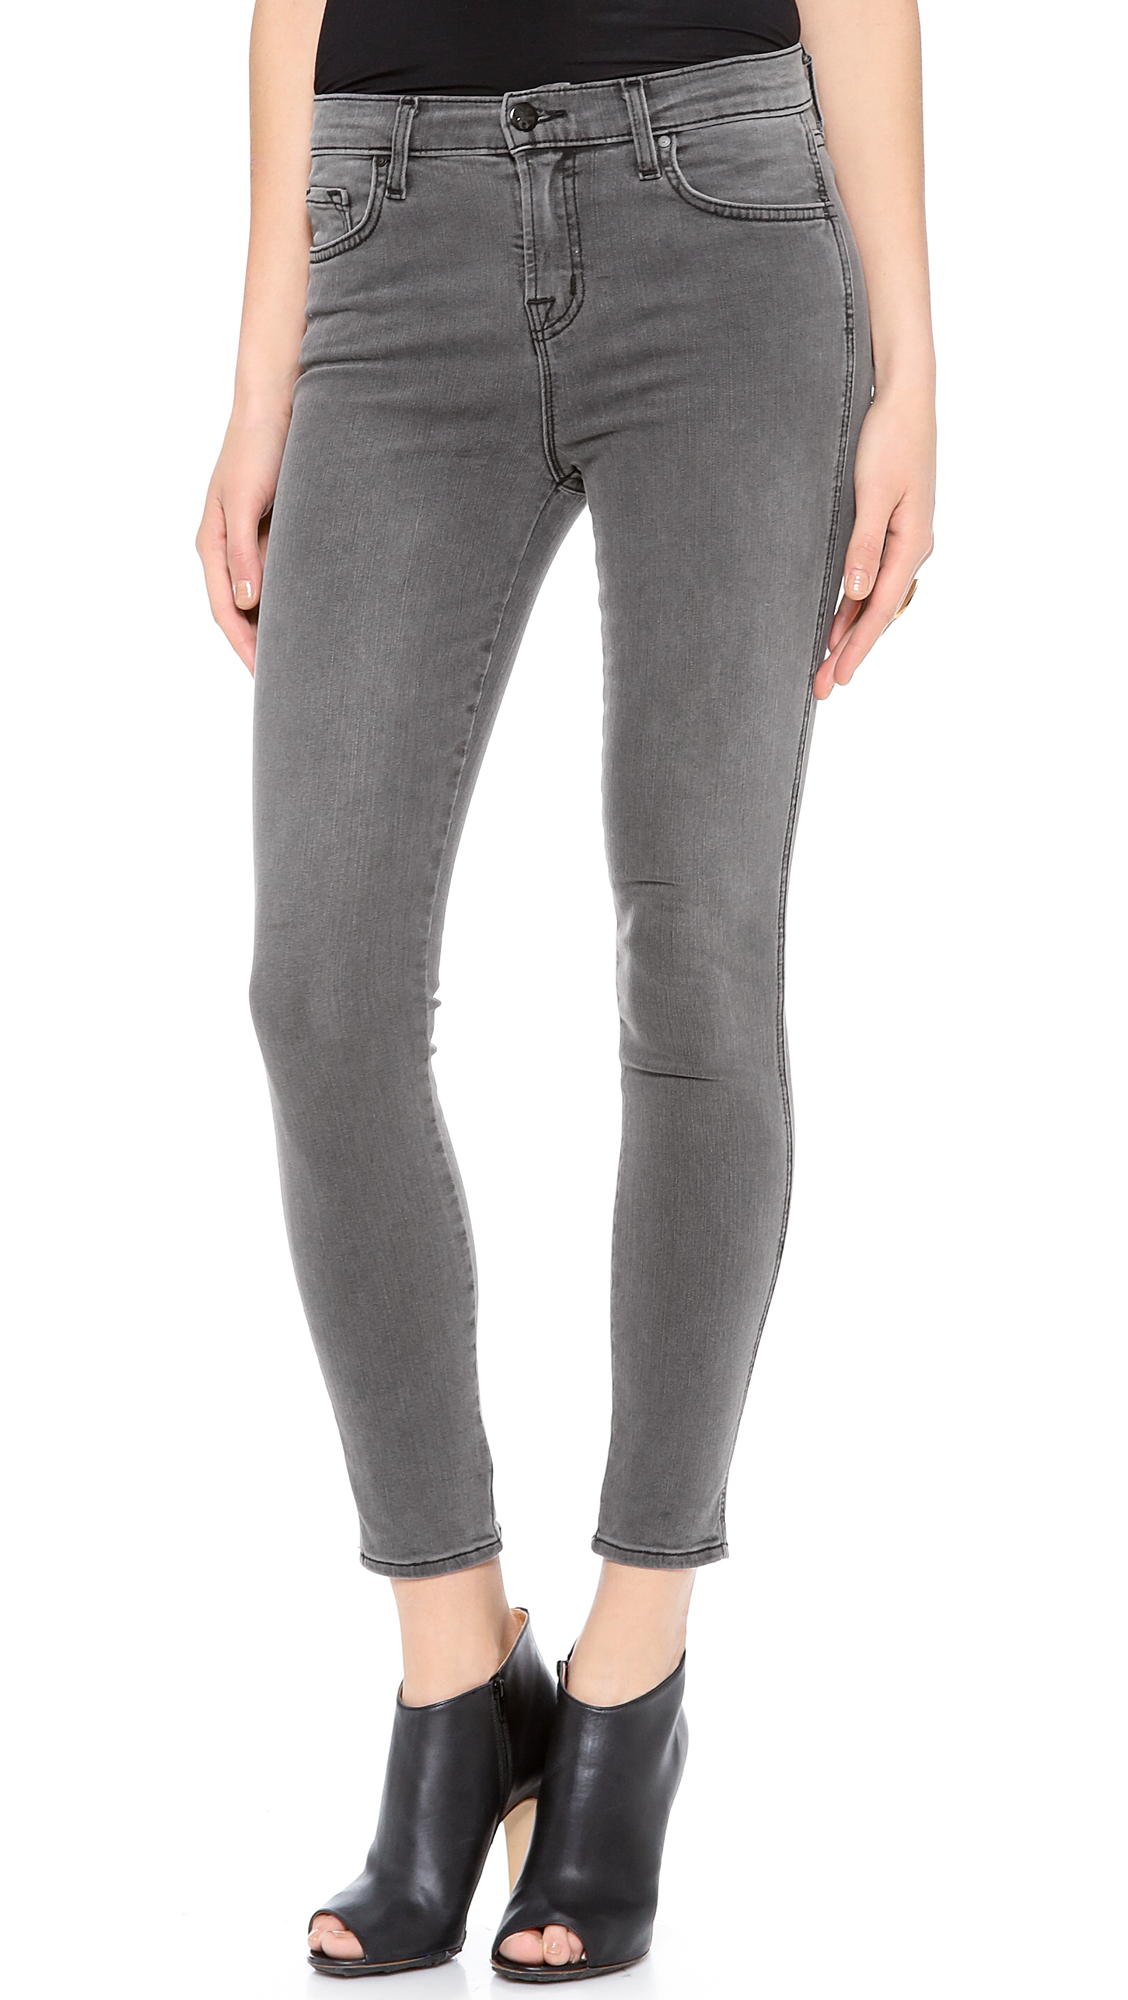 j brand 2040 bree skinny jeans shop it to me all sales in one place shop it to me. Black Bedroom Furniture Sets. Home Design Ideas